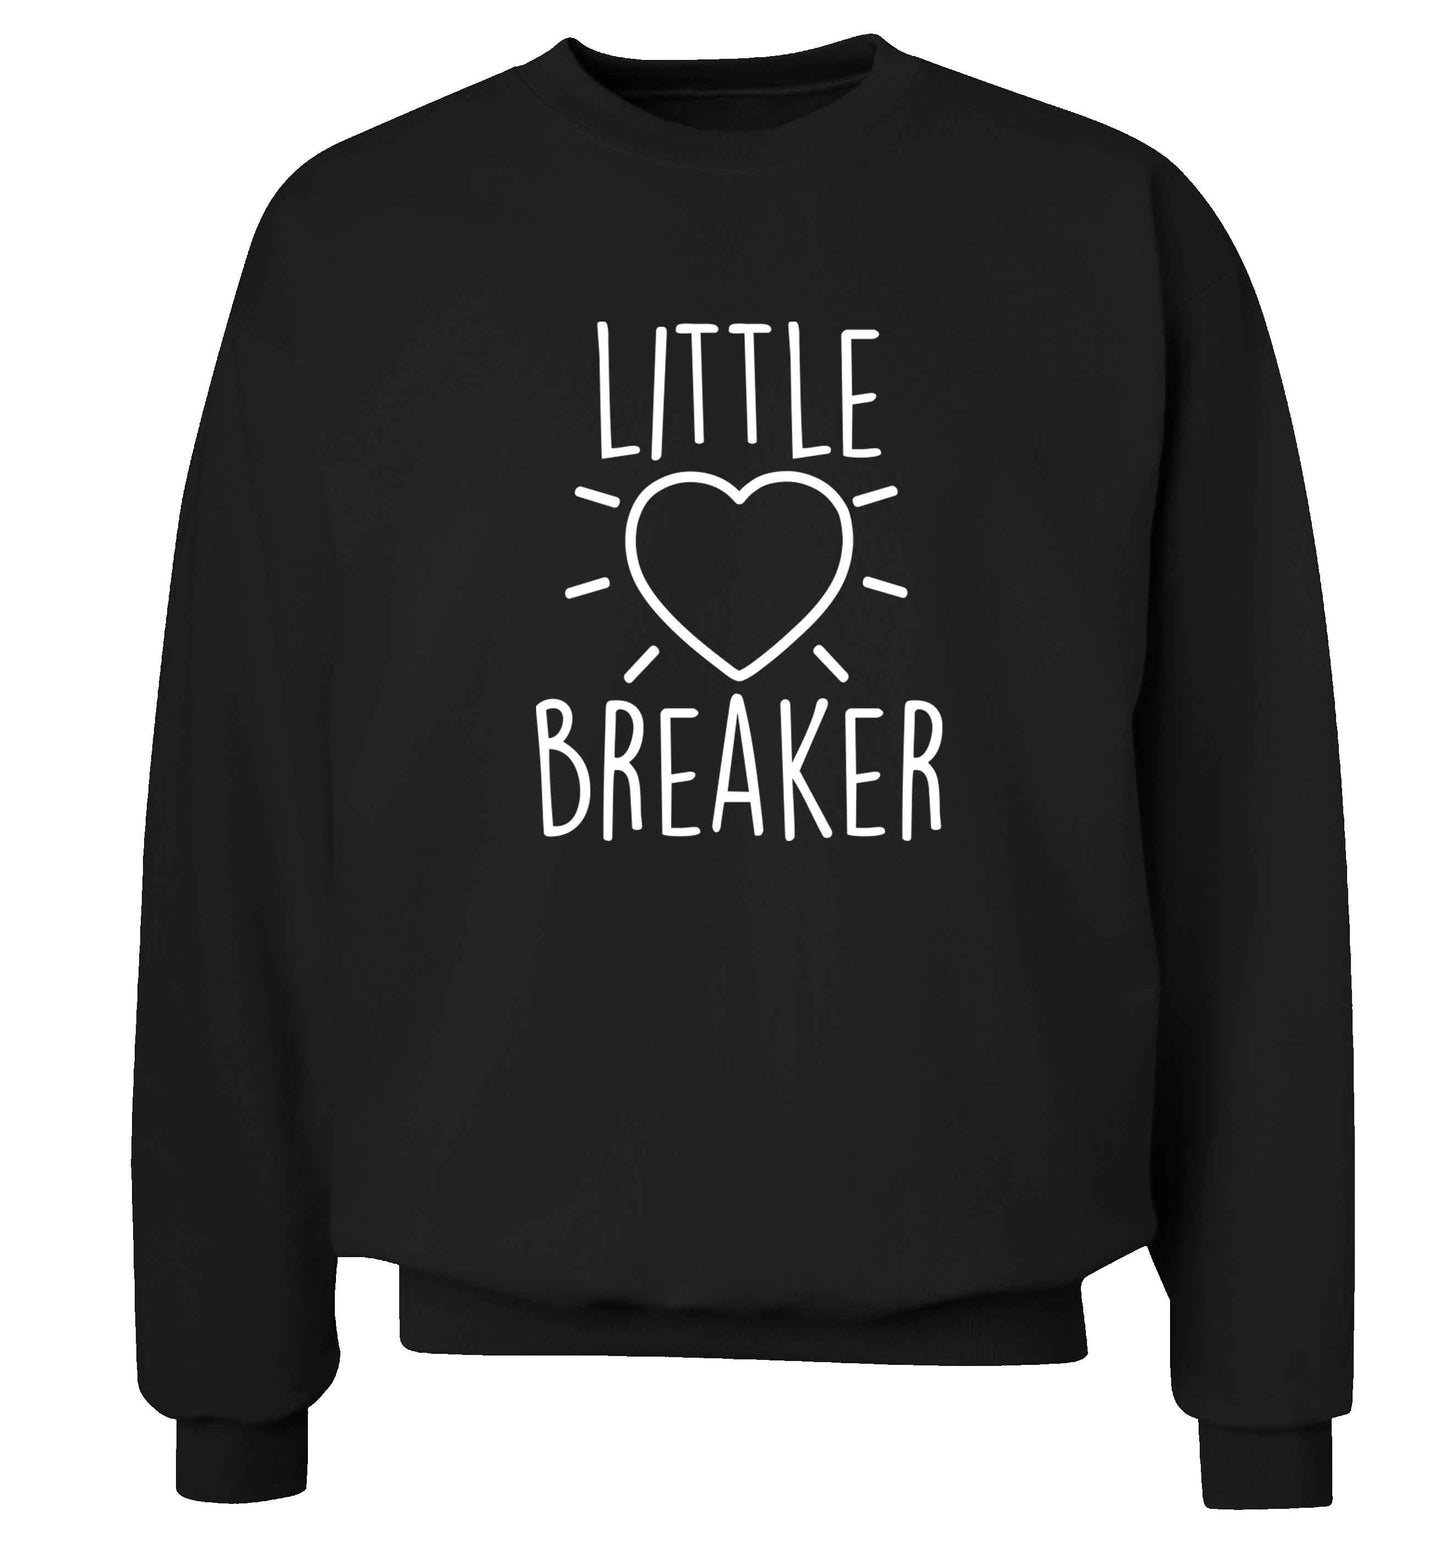 Little heartbreaker adult's unisex black sweater 2XL